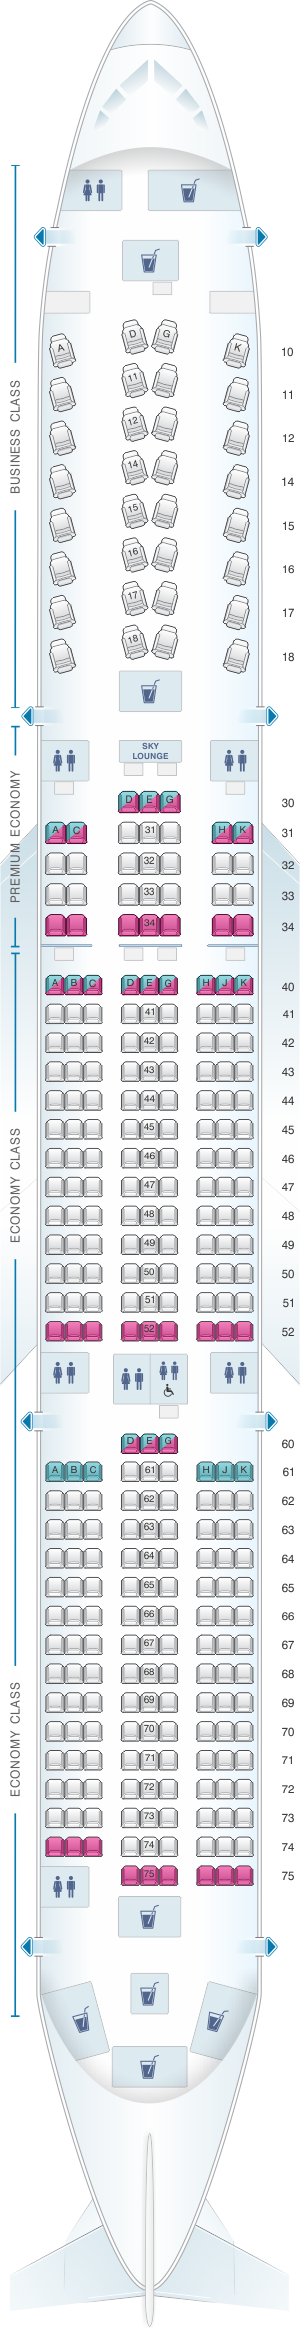 Seat map for China Airlines Airbus A350 900